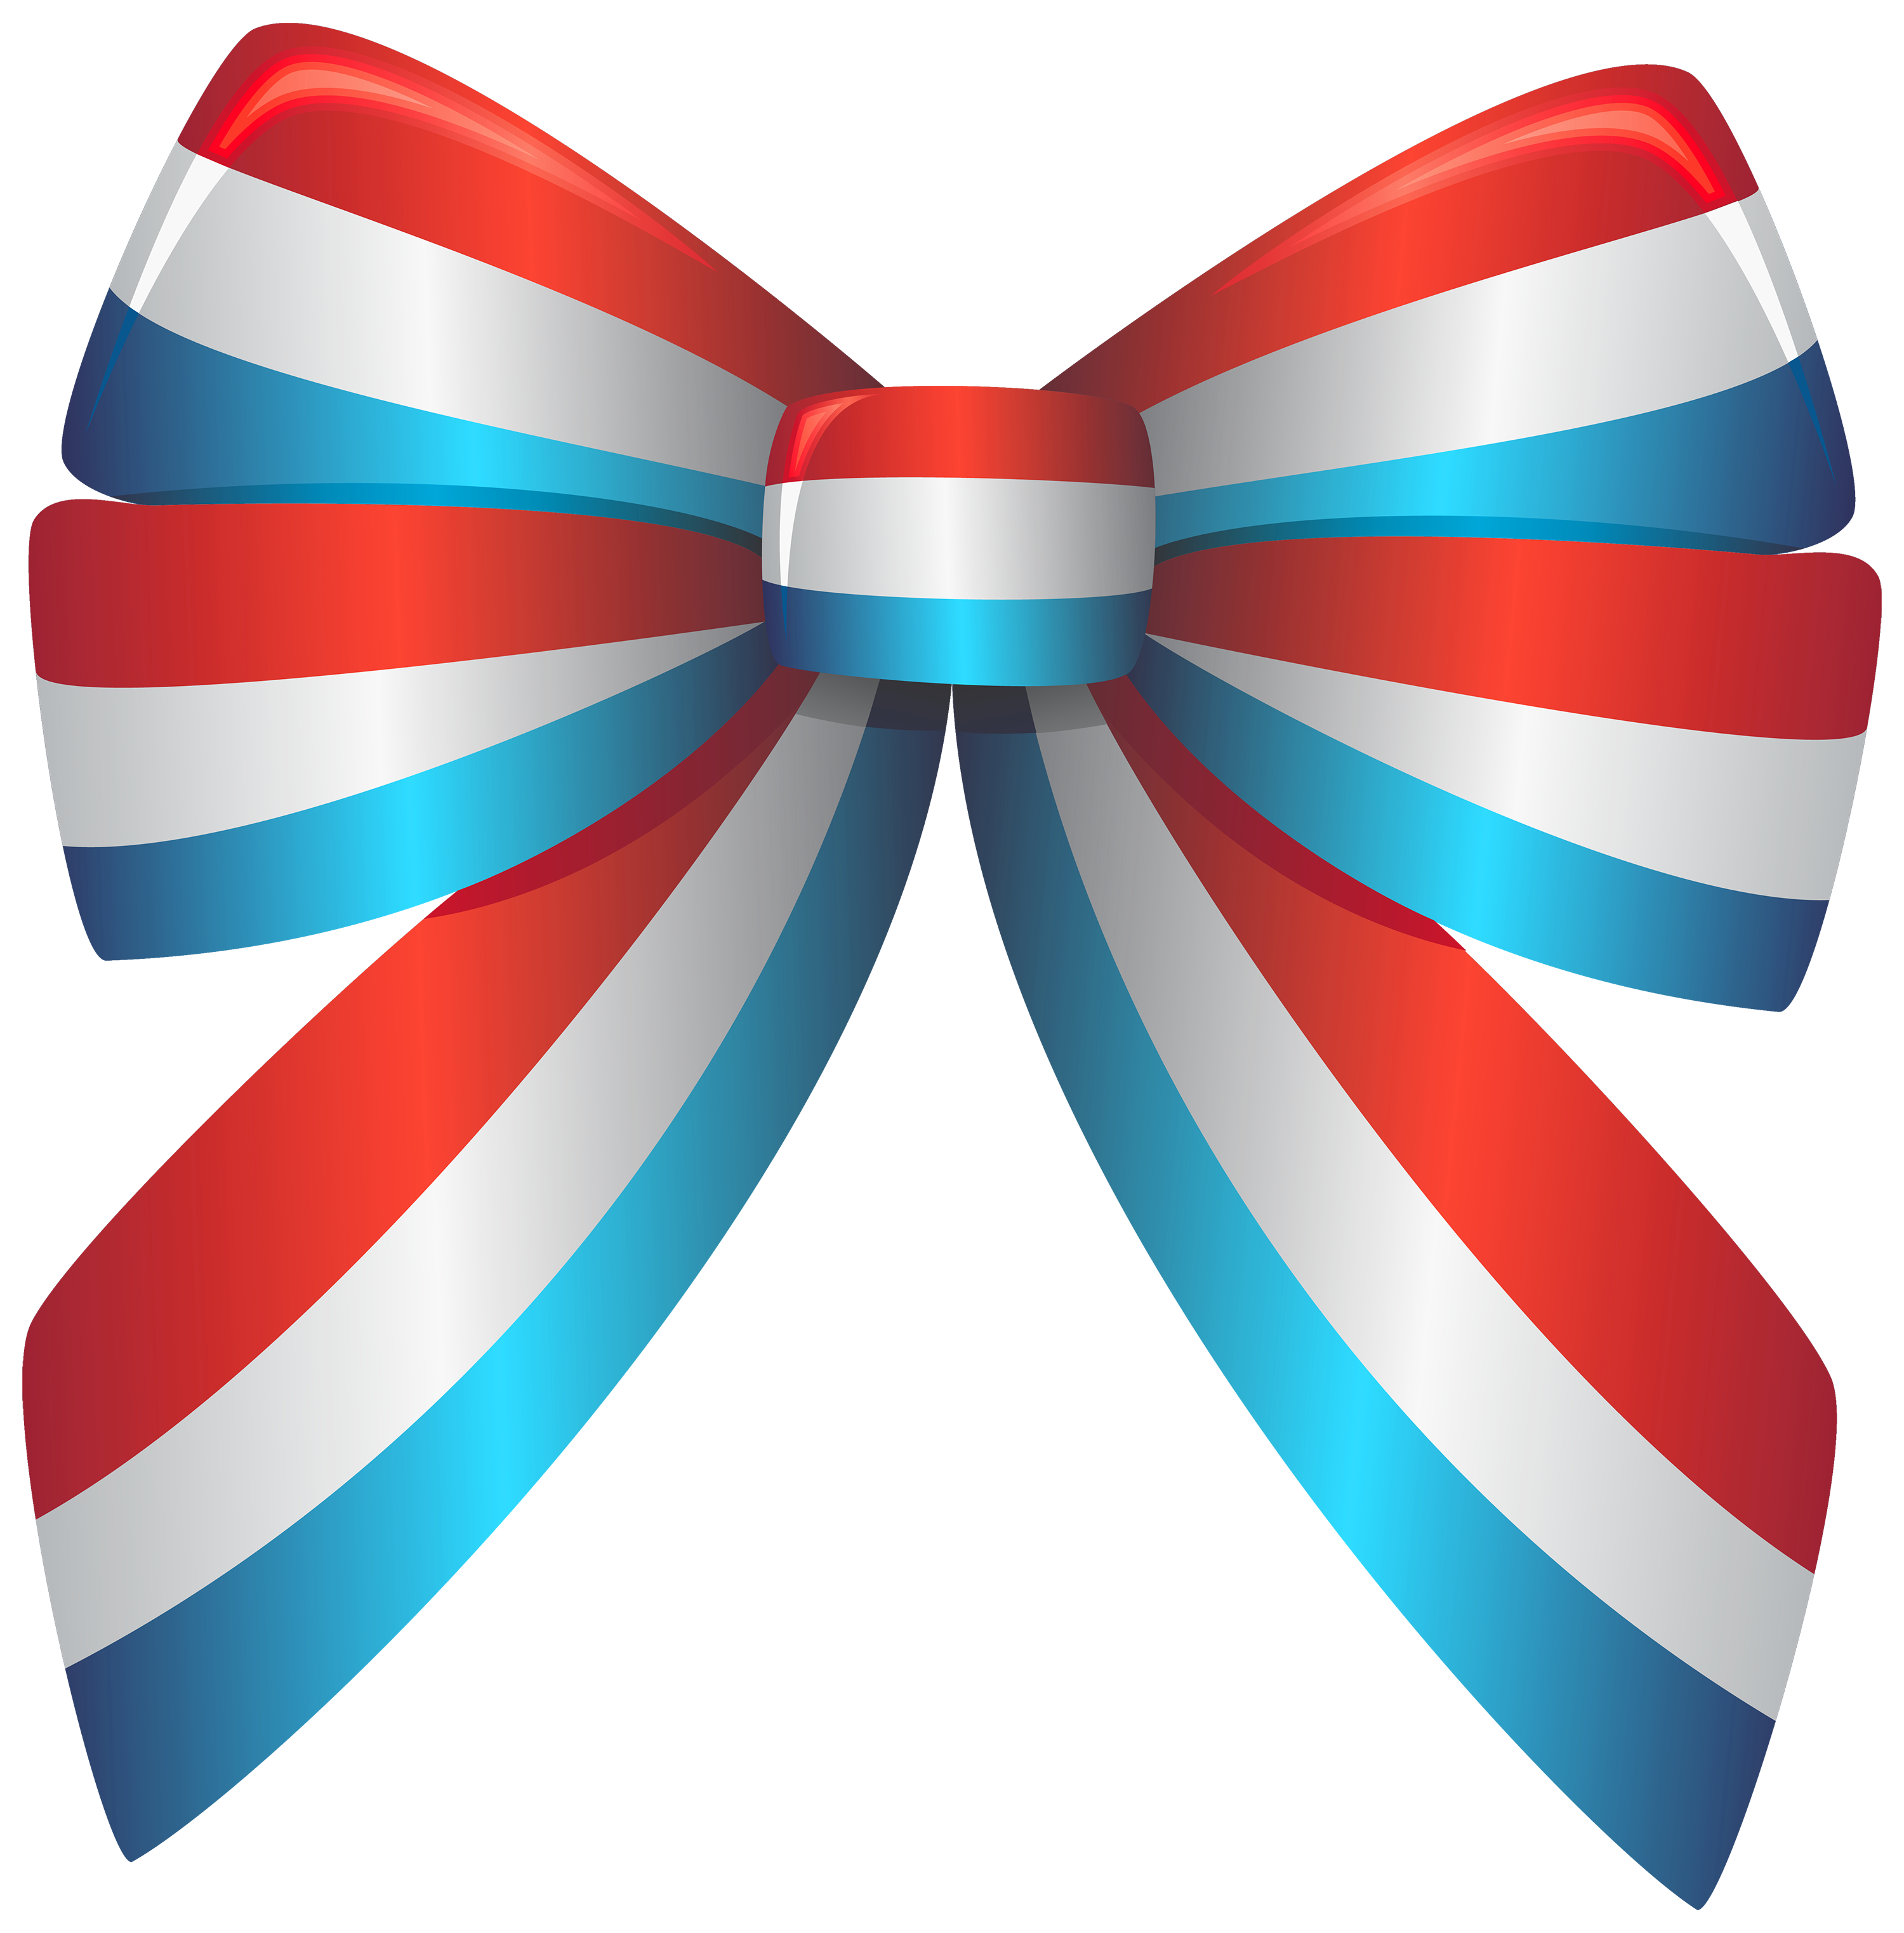 Red White and Blue Ribbon PNG Clipart - Best WEB Clipart